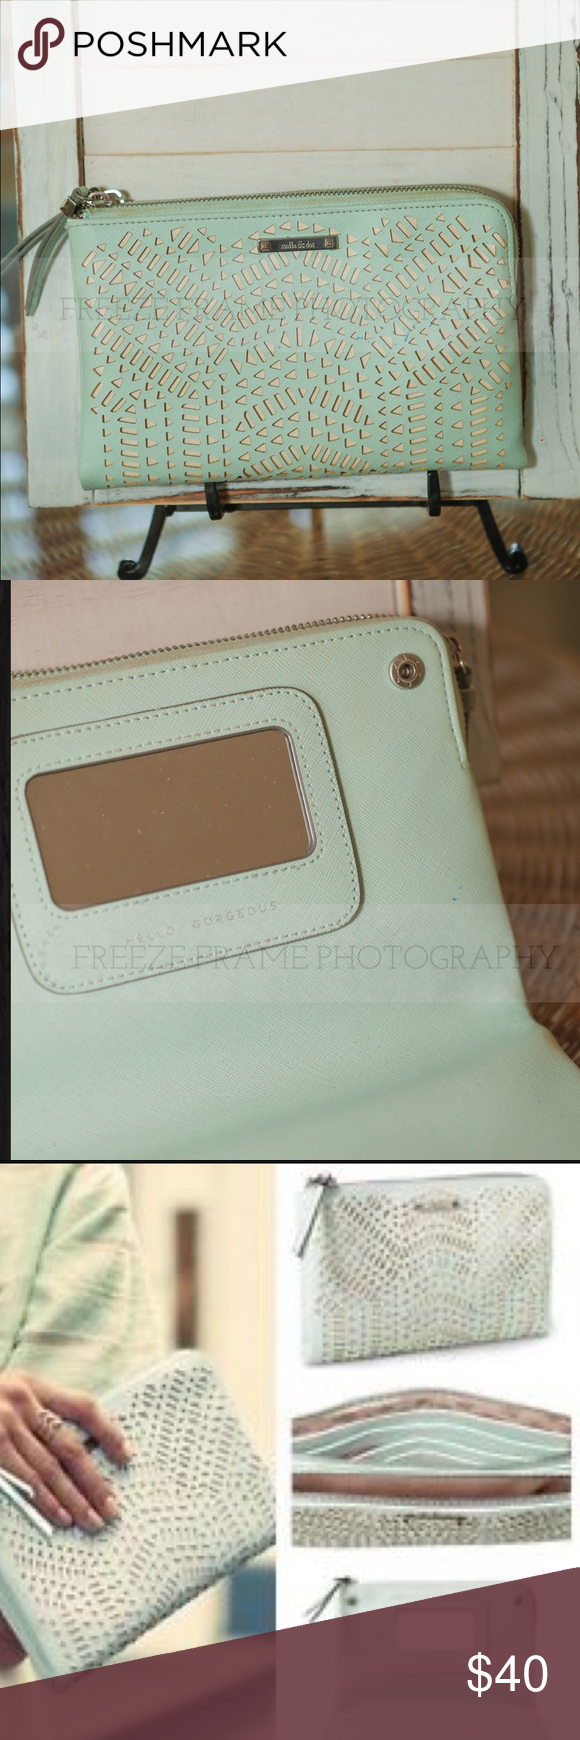 Stella & Dot clutch Tiffany blue. Super cute versatile clutch. First 2 pictures are actual purse. Second two are SND ads. This purse has been gently used. Stella & Dot Bags Clutches & Wristlets